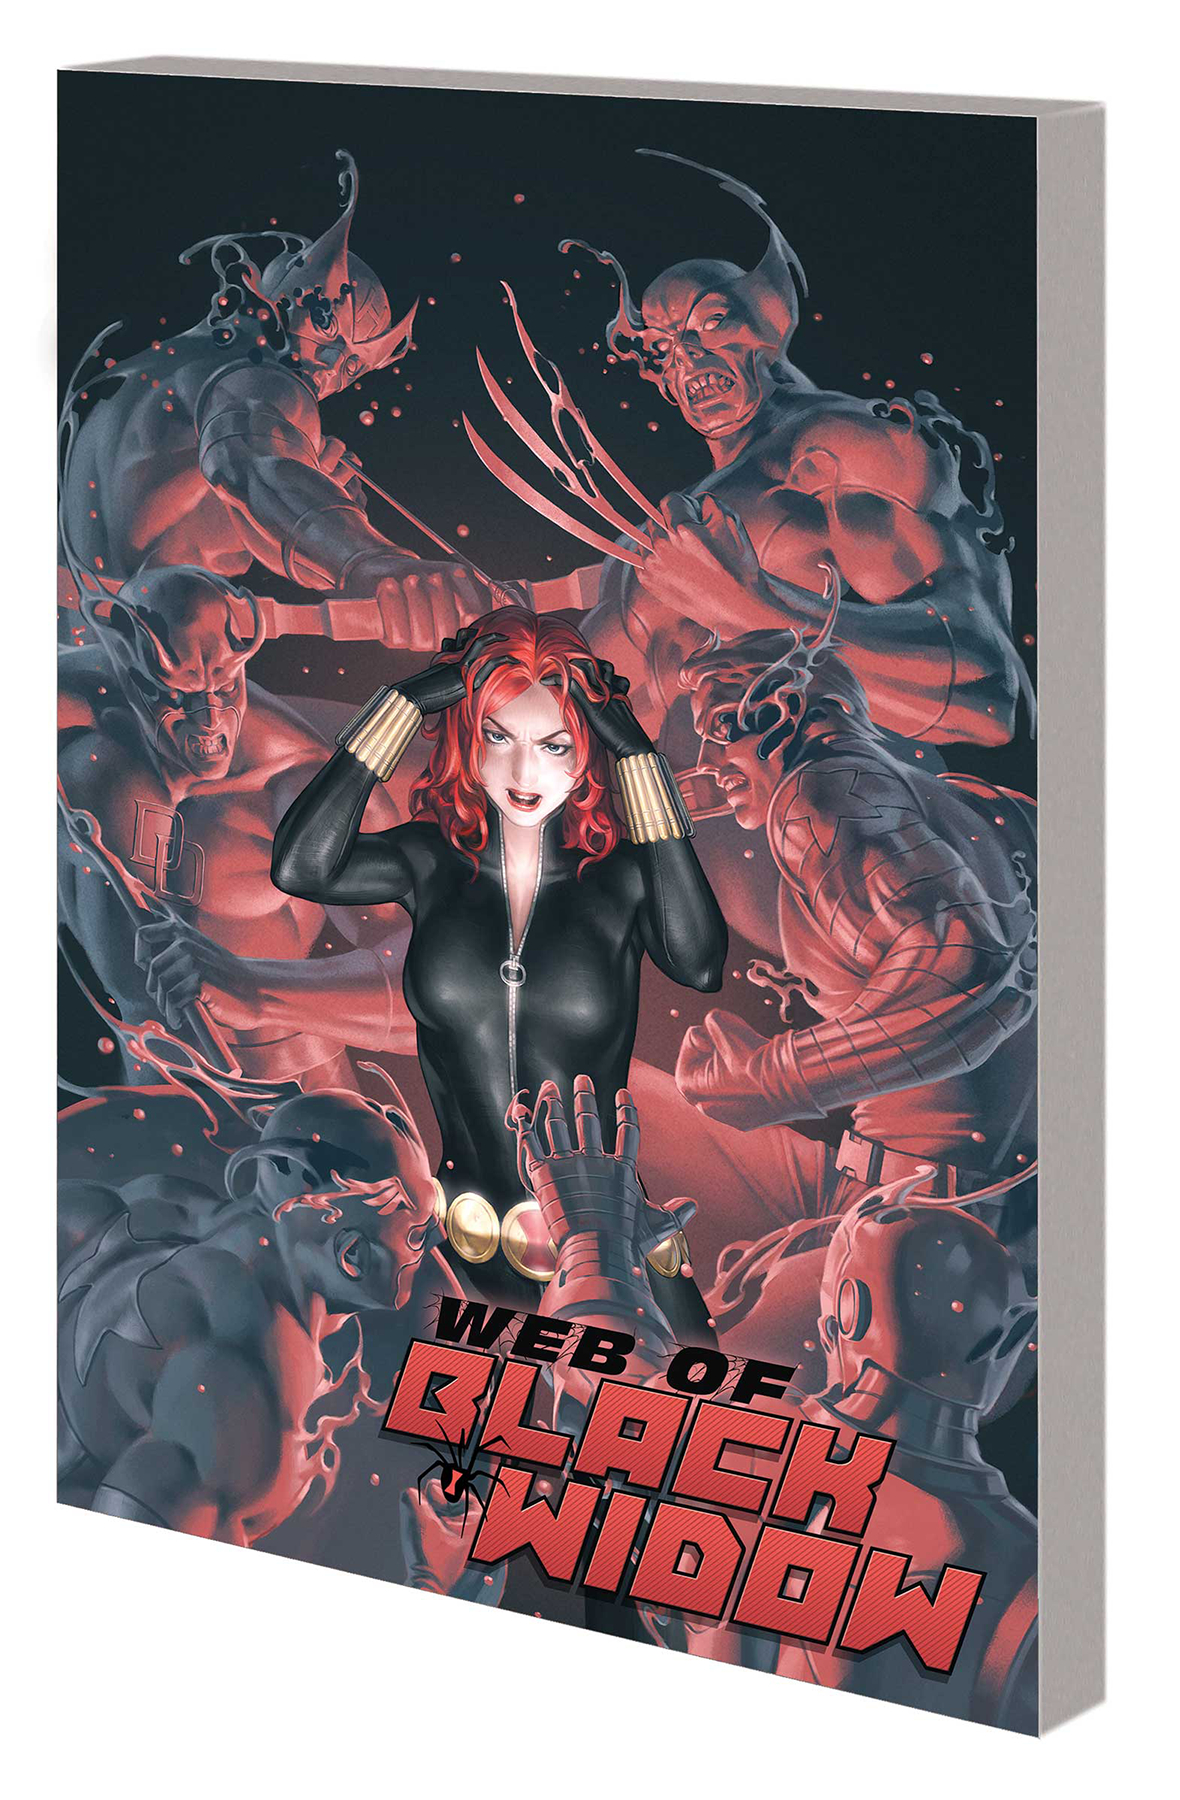 WEB OF BLACK WIDOW TP